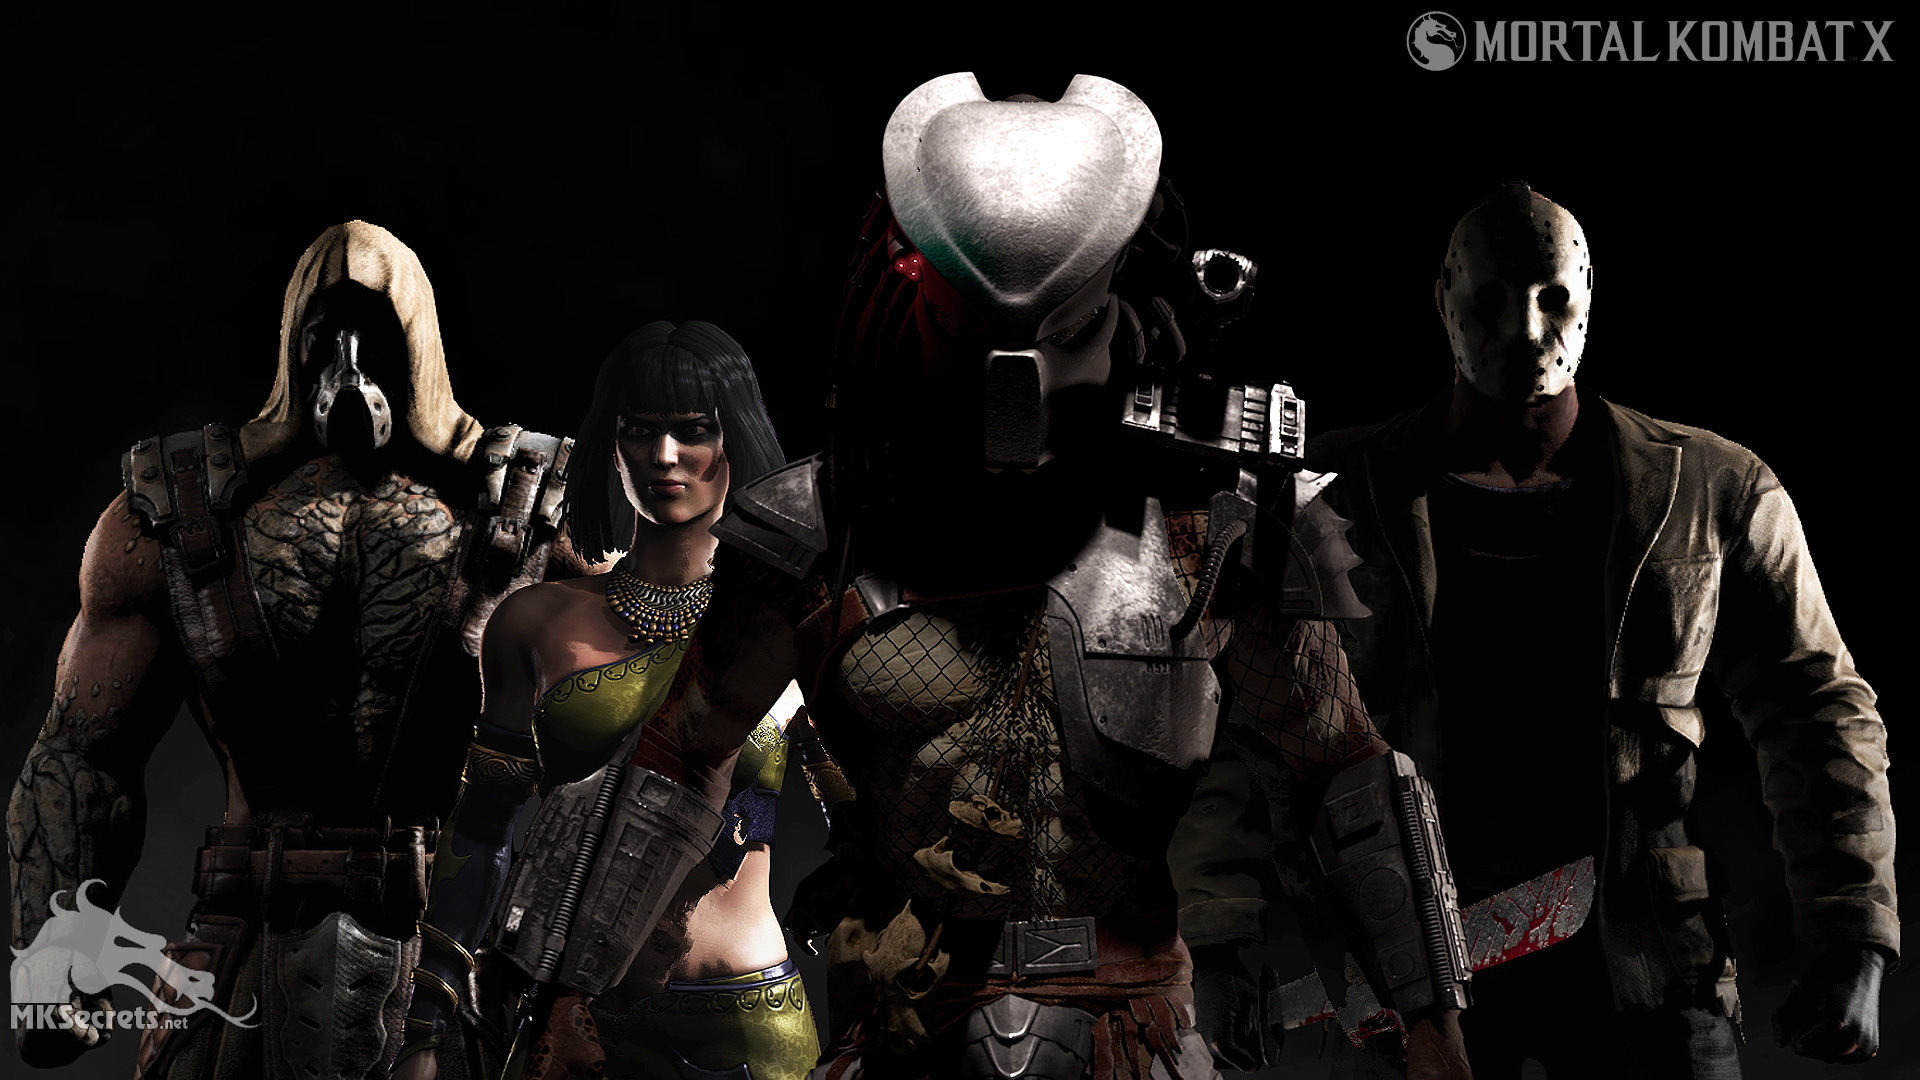 Mortal Kombat X Wallpapers   Mortal Kombat Secrets 1920x1080